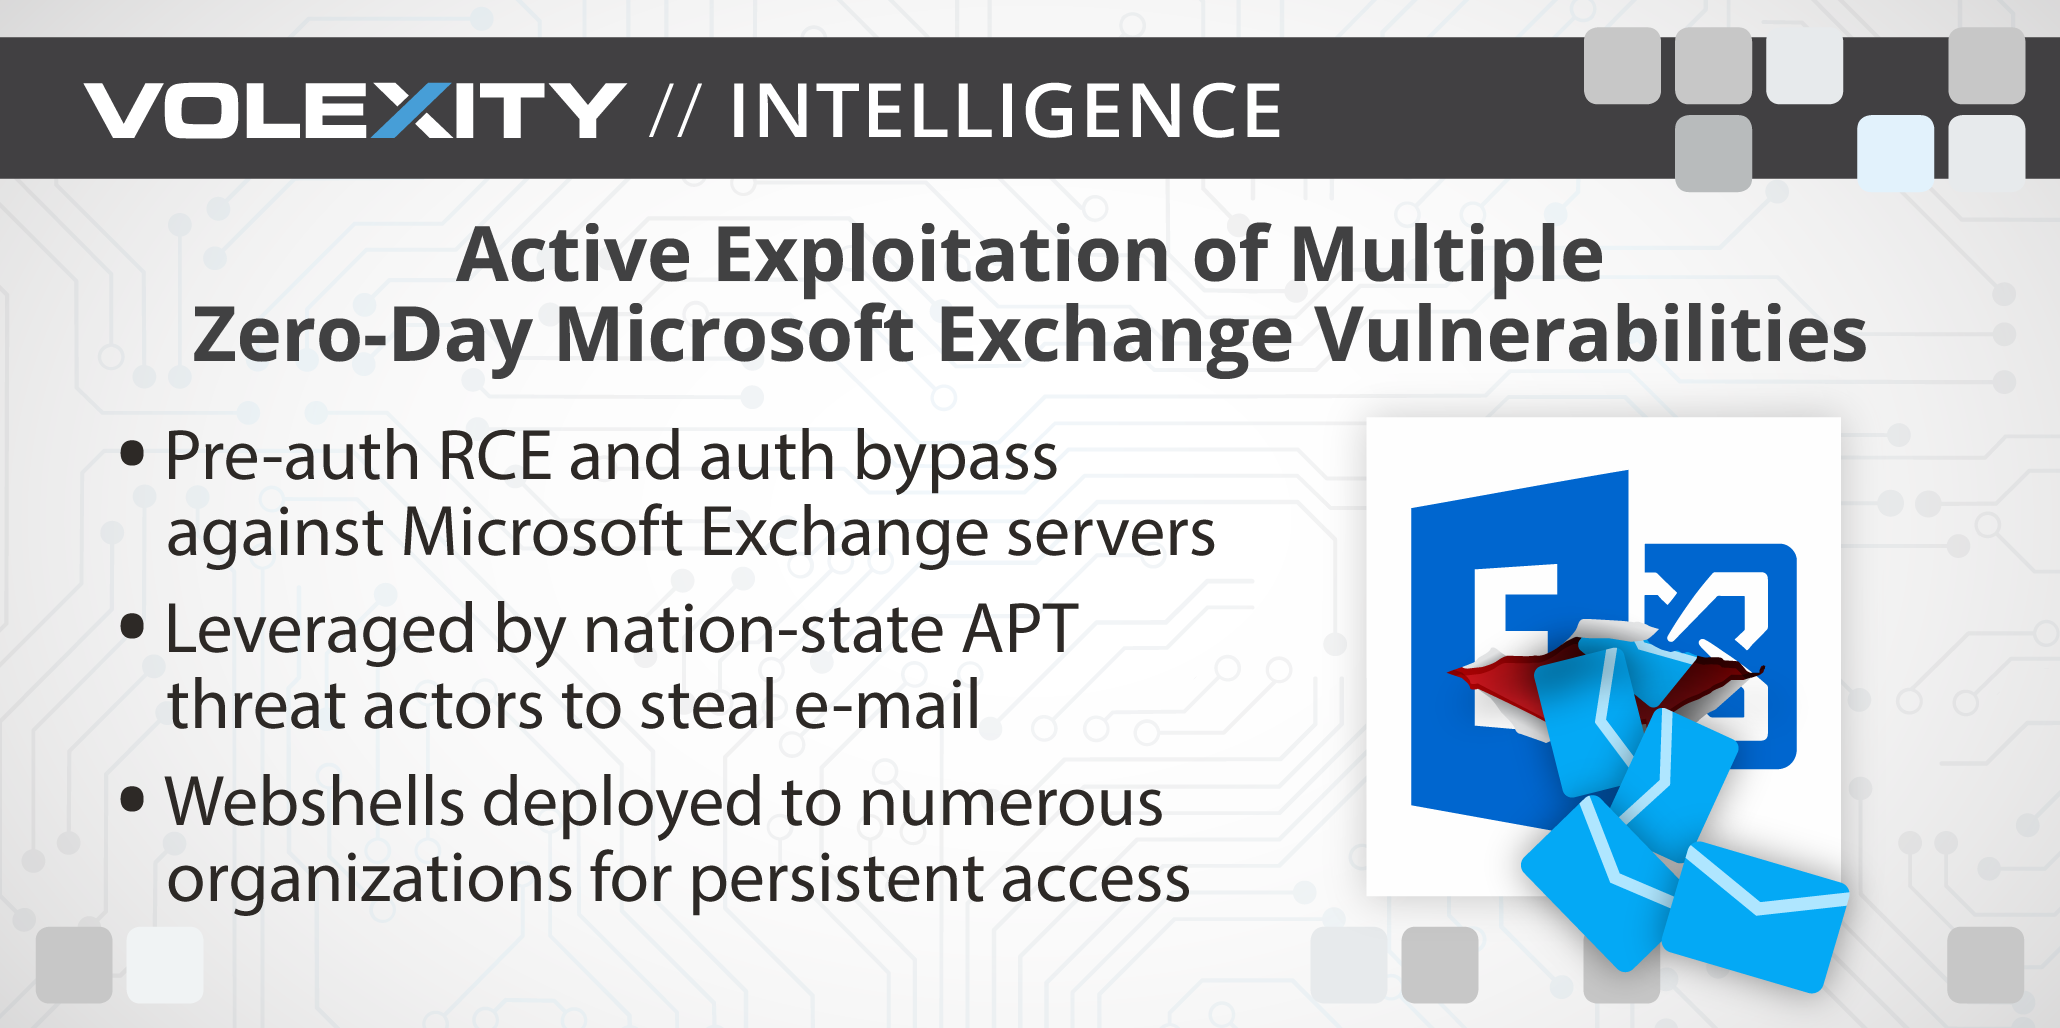 Operation Exchange Marauder: Active Exploitation of Multiple Zero-Day Microsoft Exchange Vulnerabilities